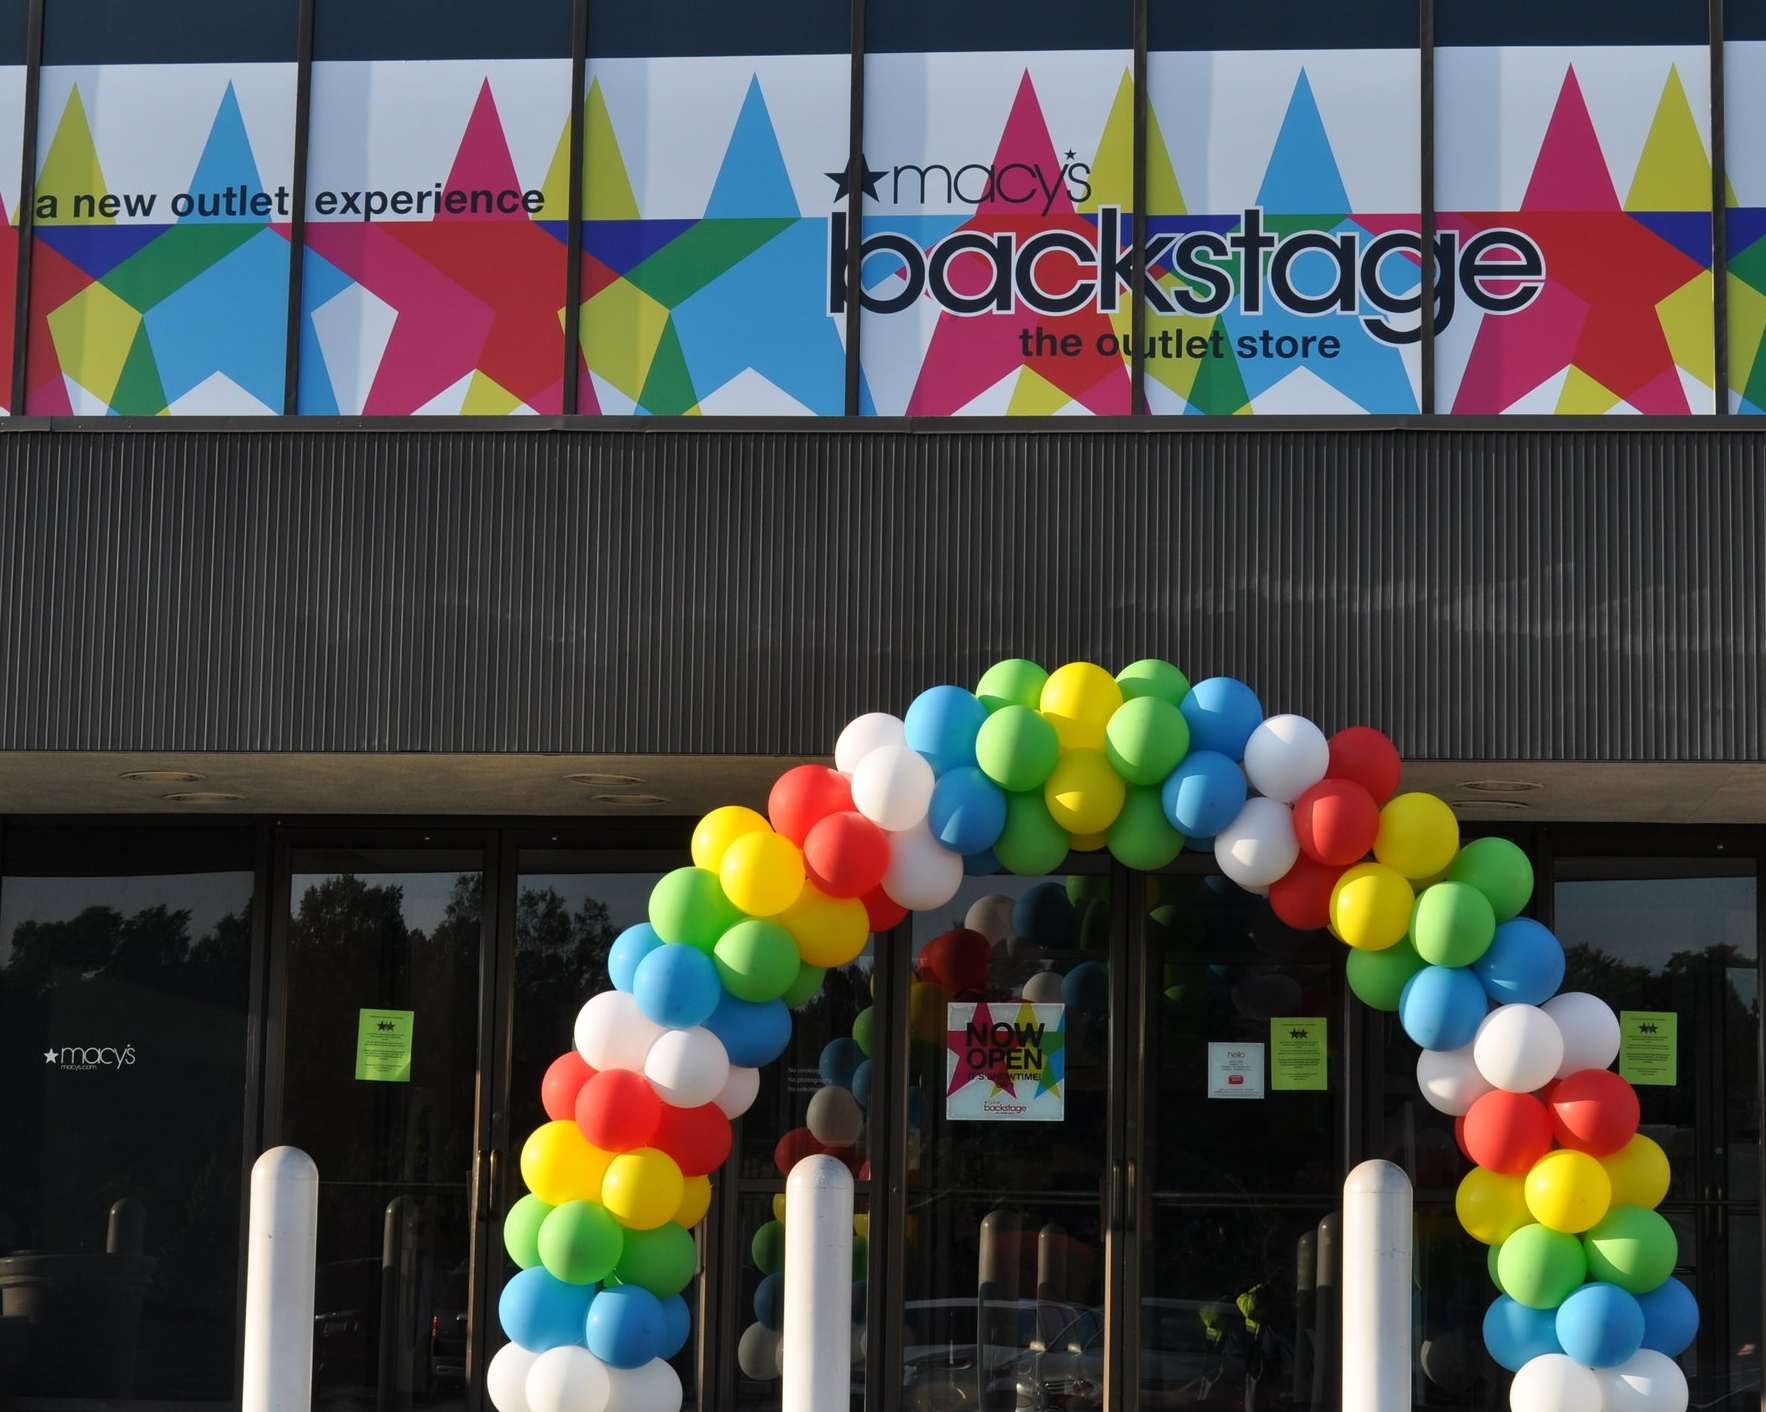 Macy's backstage balloon arch